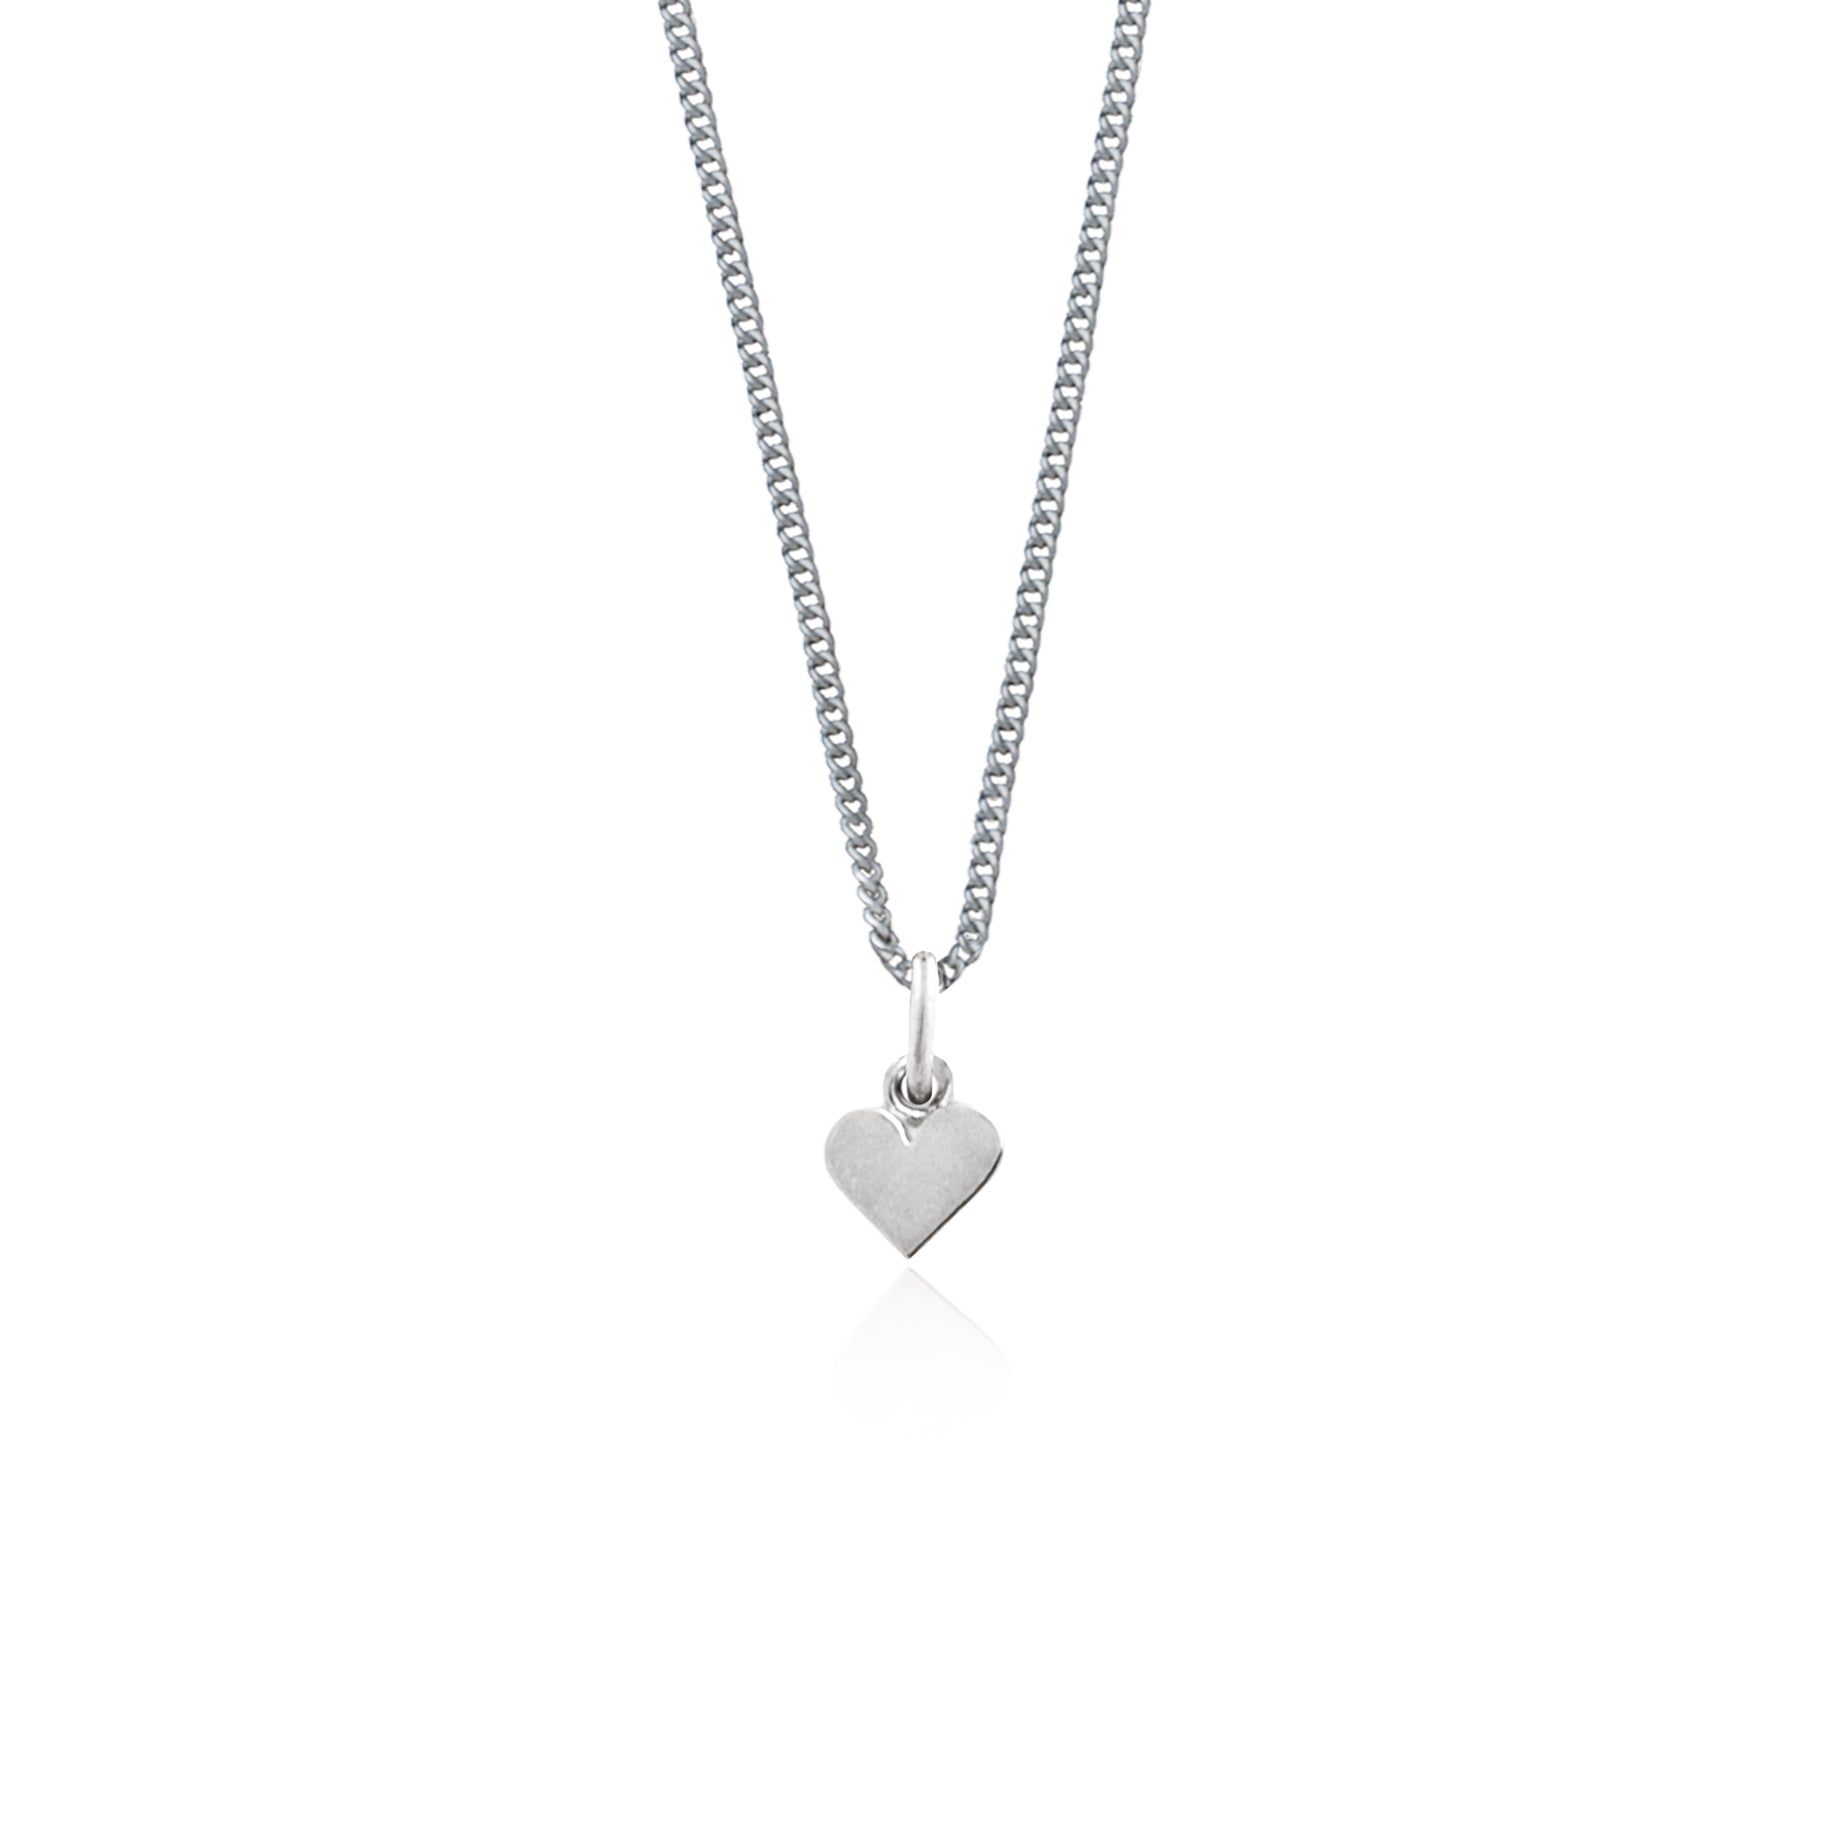 Single Heart of Gold Necklace - (Silver)